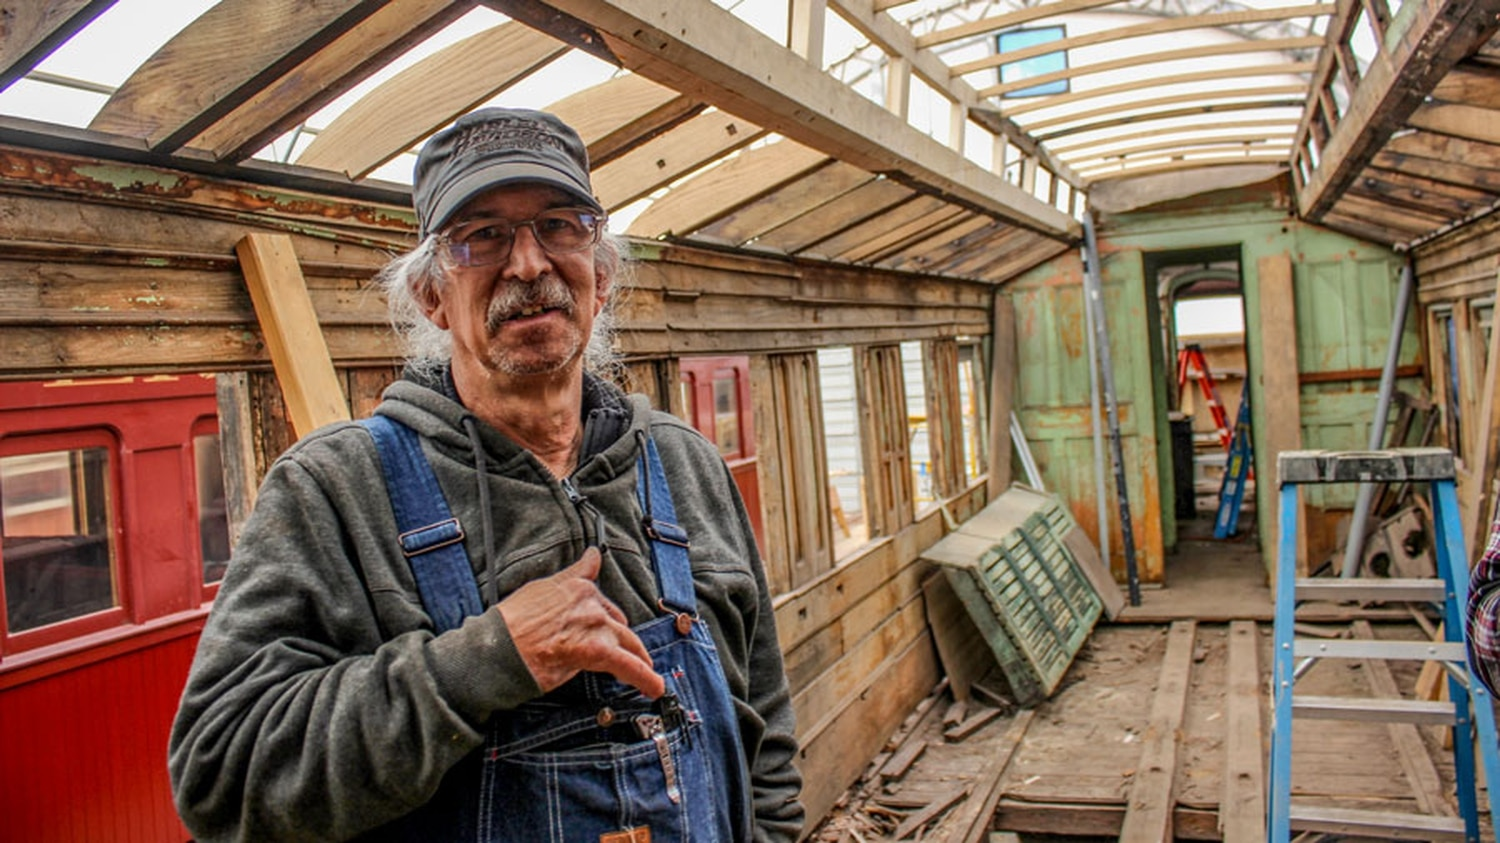 Master carpenter Zell Olson saves cars like this sleeper from 1883 that later became Paycar F and was used to distribute wages to railroad workers.